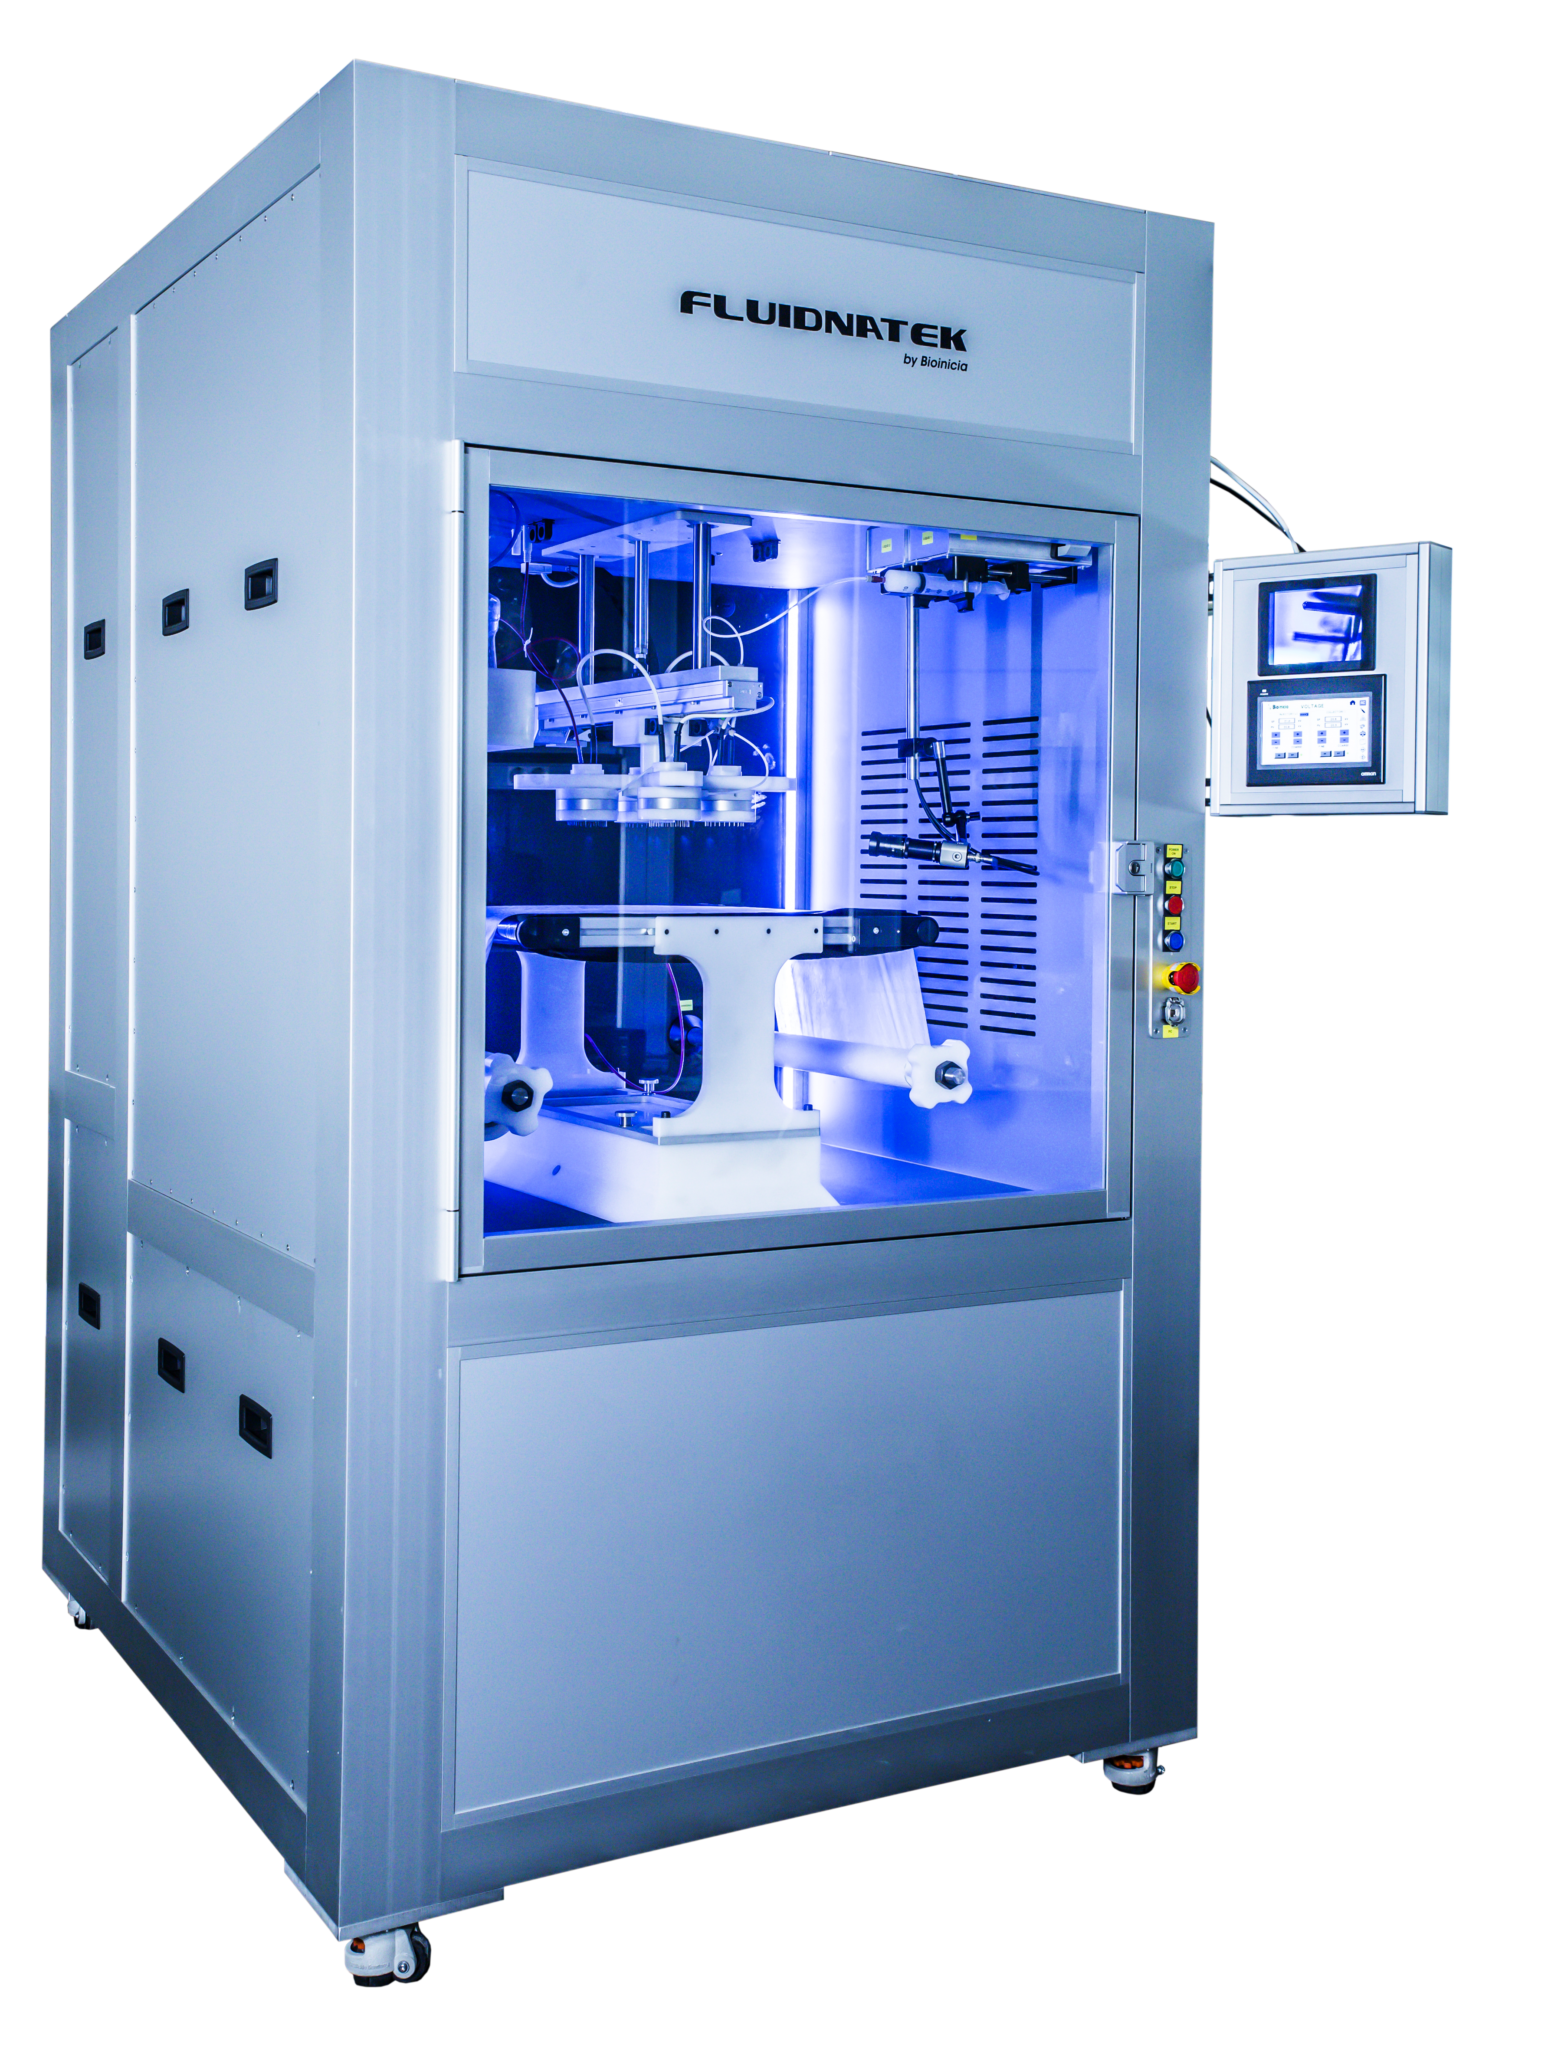 Fluidnatek LE-500 Bioinicia electrospinning machine